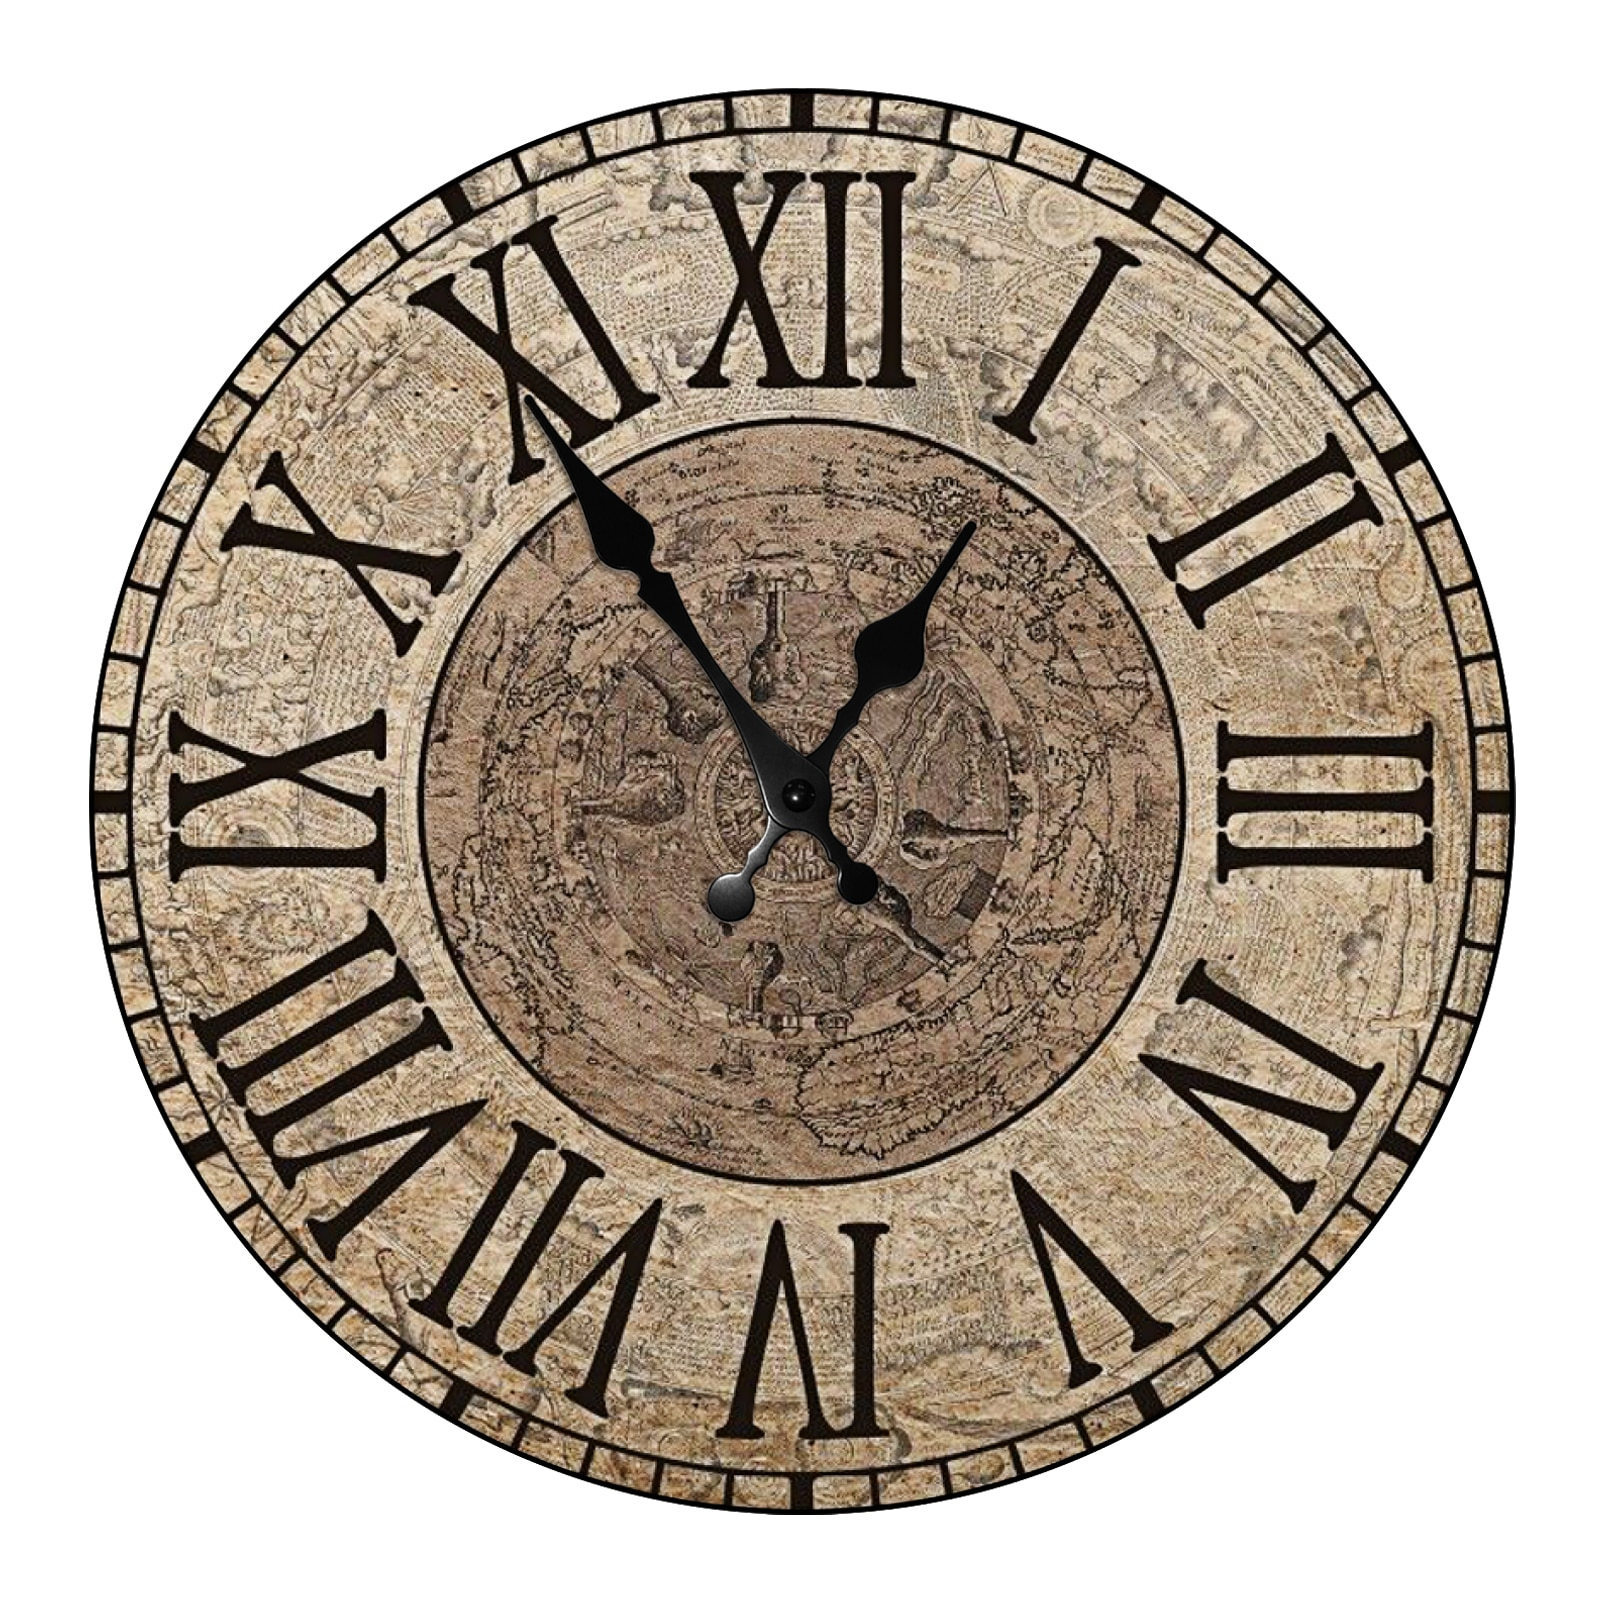 Antique Wooden Wall Clock Decorative for living Room European Style Silent Non-Ticking Quartz Classic Round Wood Wall Clock eiffel tower round wood analog wall clock